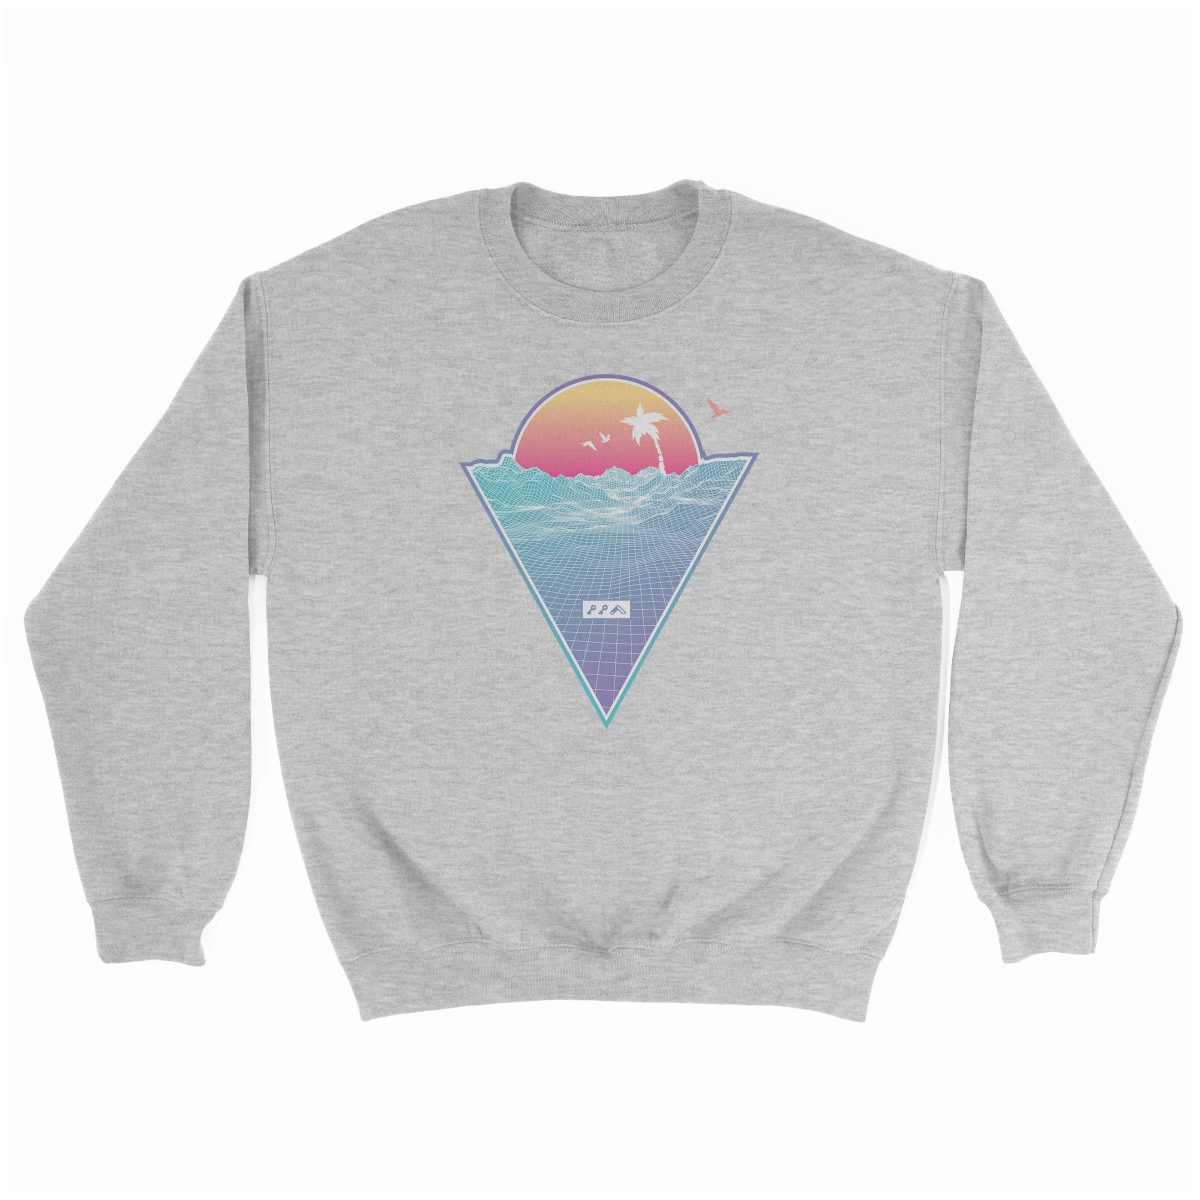 """OFF THE GRID"" cali vibes retro 80s design sweatshirt grey at kikicutt.com"